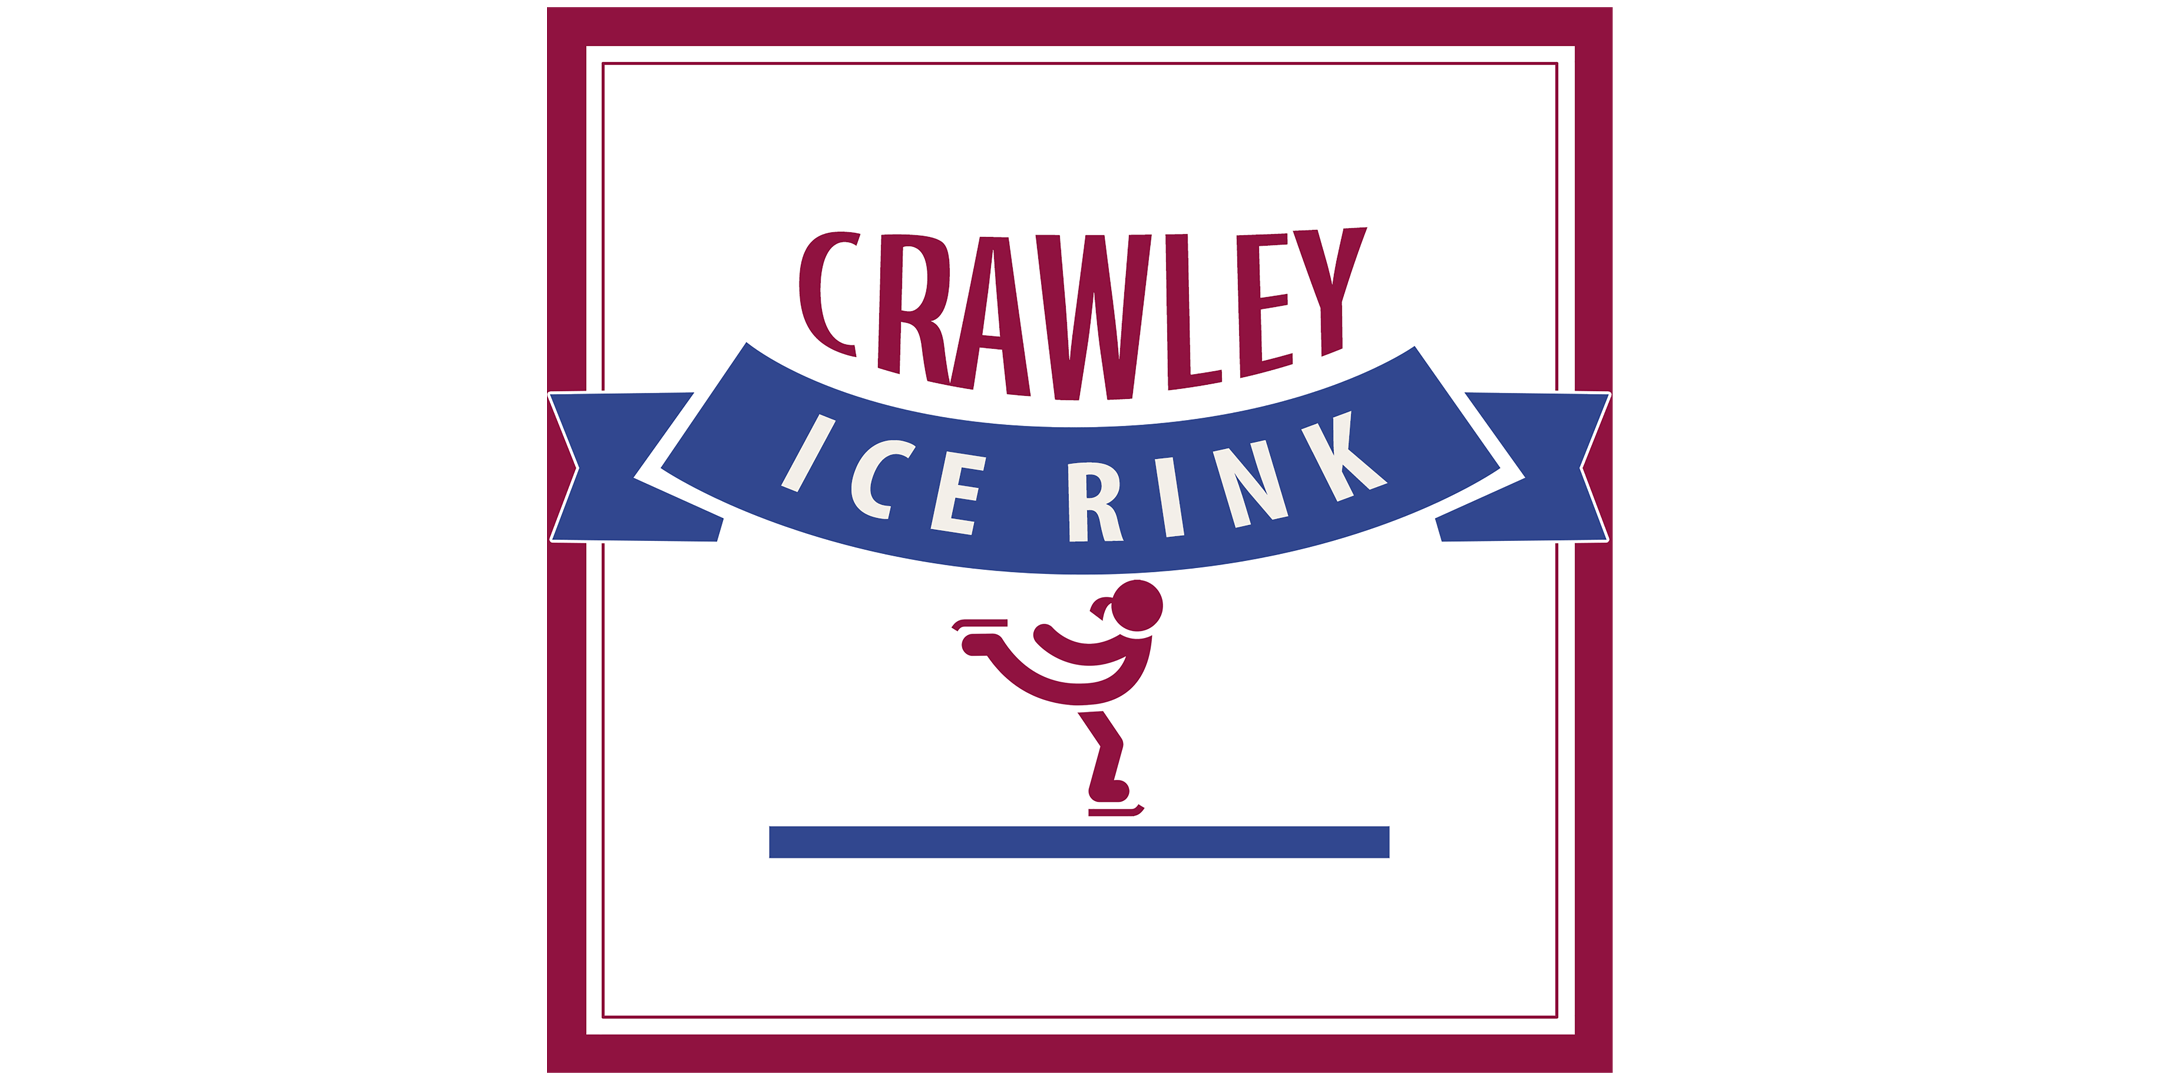 Crawley Ice Rink - 7th January (Peak)